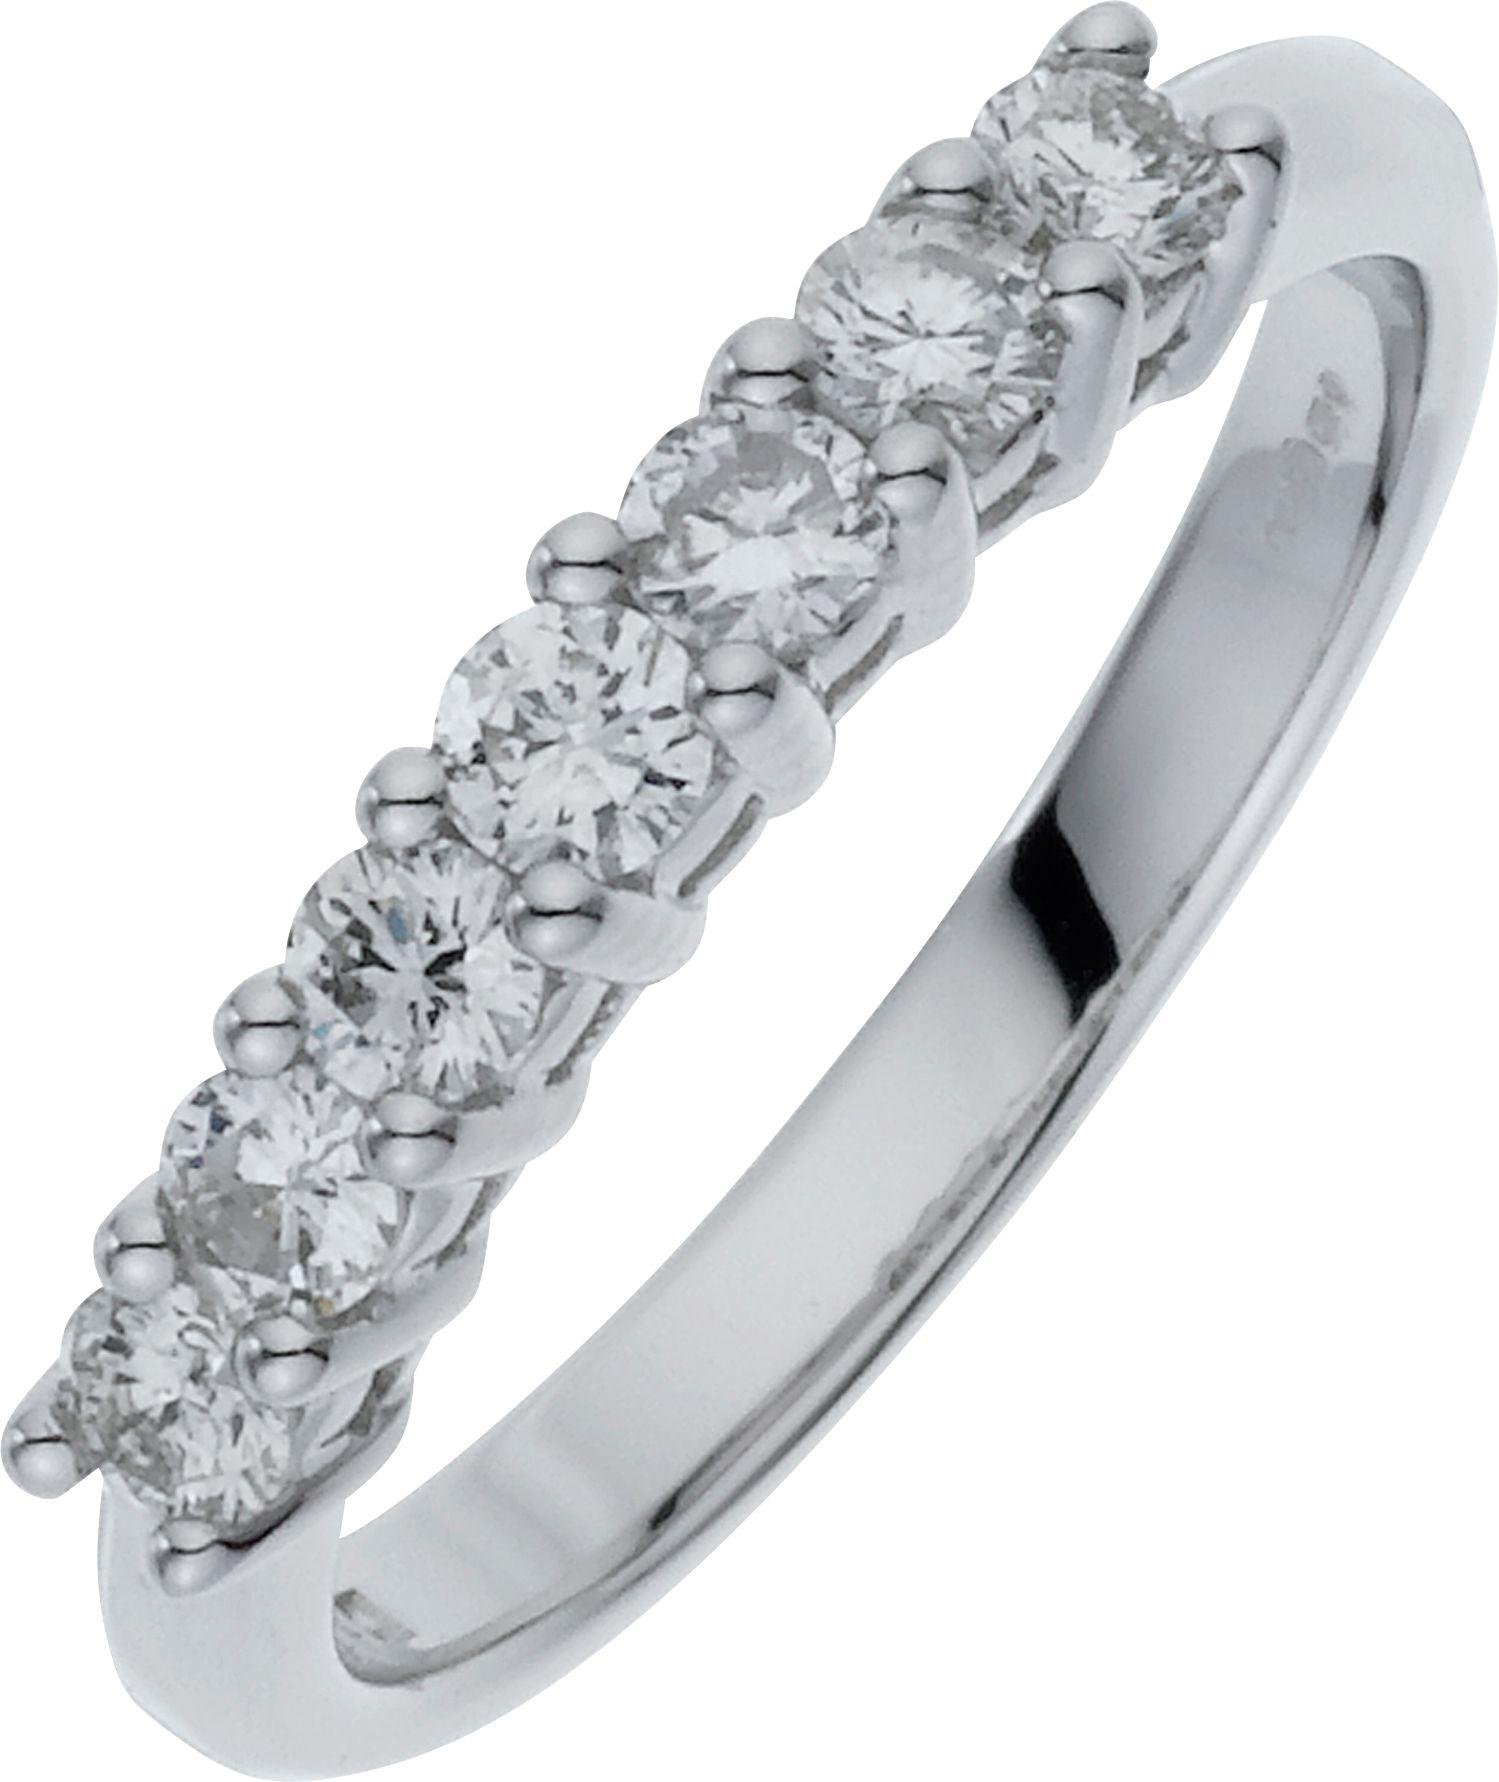 Image of Made For You - 9 Carat White Gold 7 Stone Eternity Ring - Size N